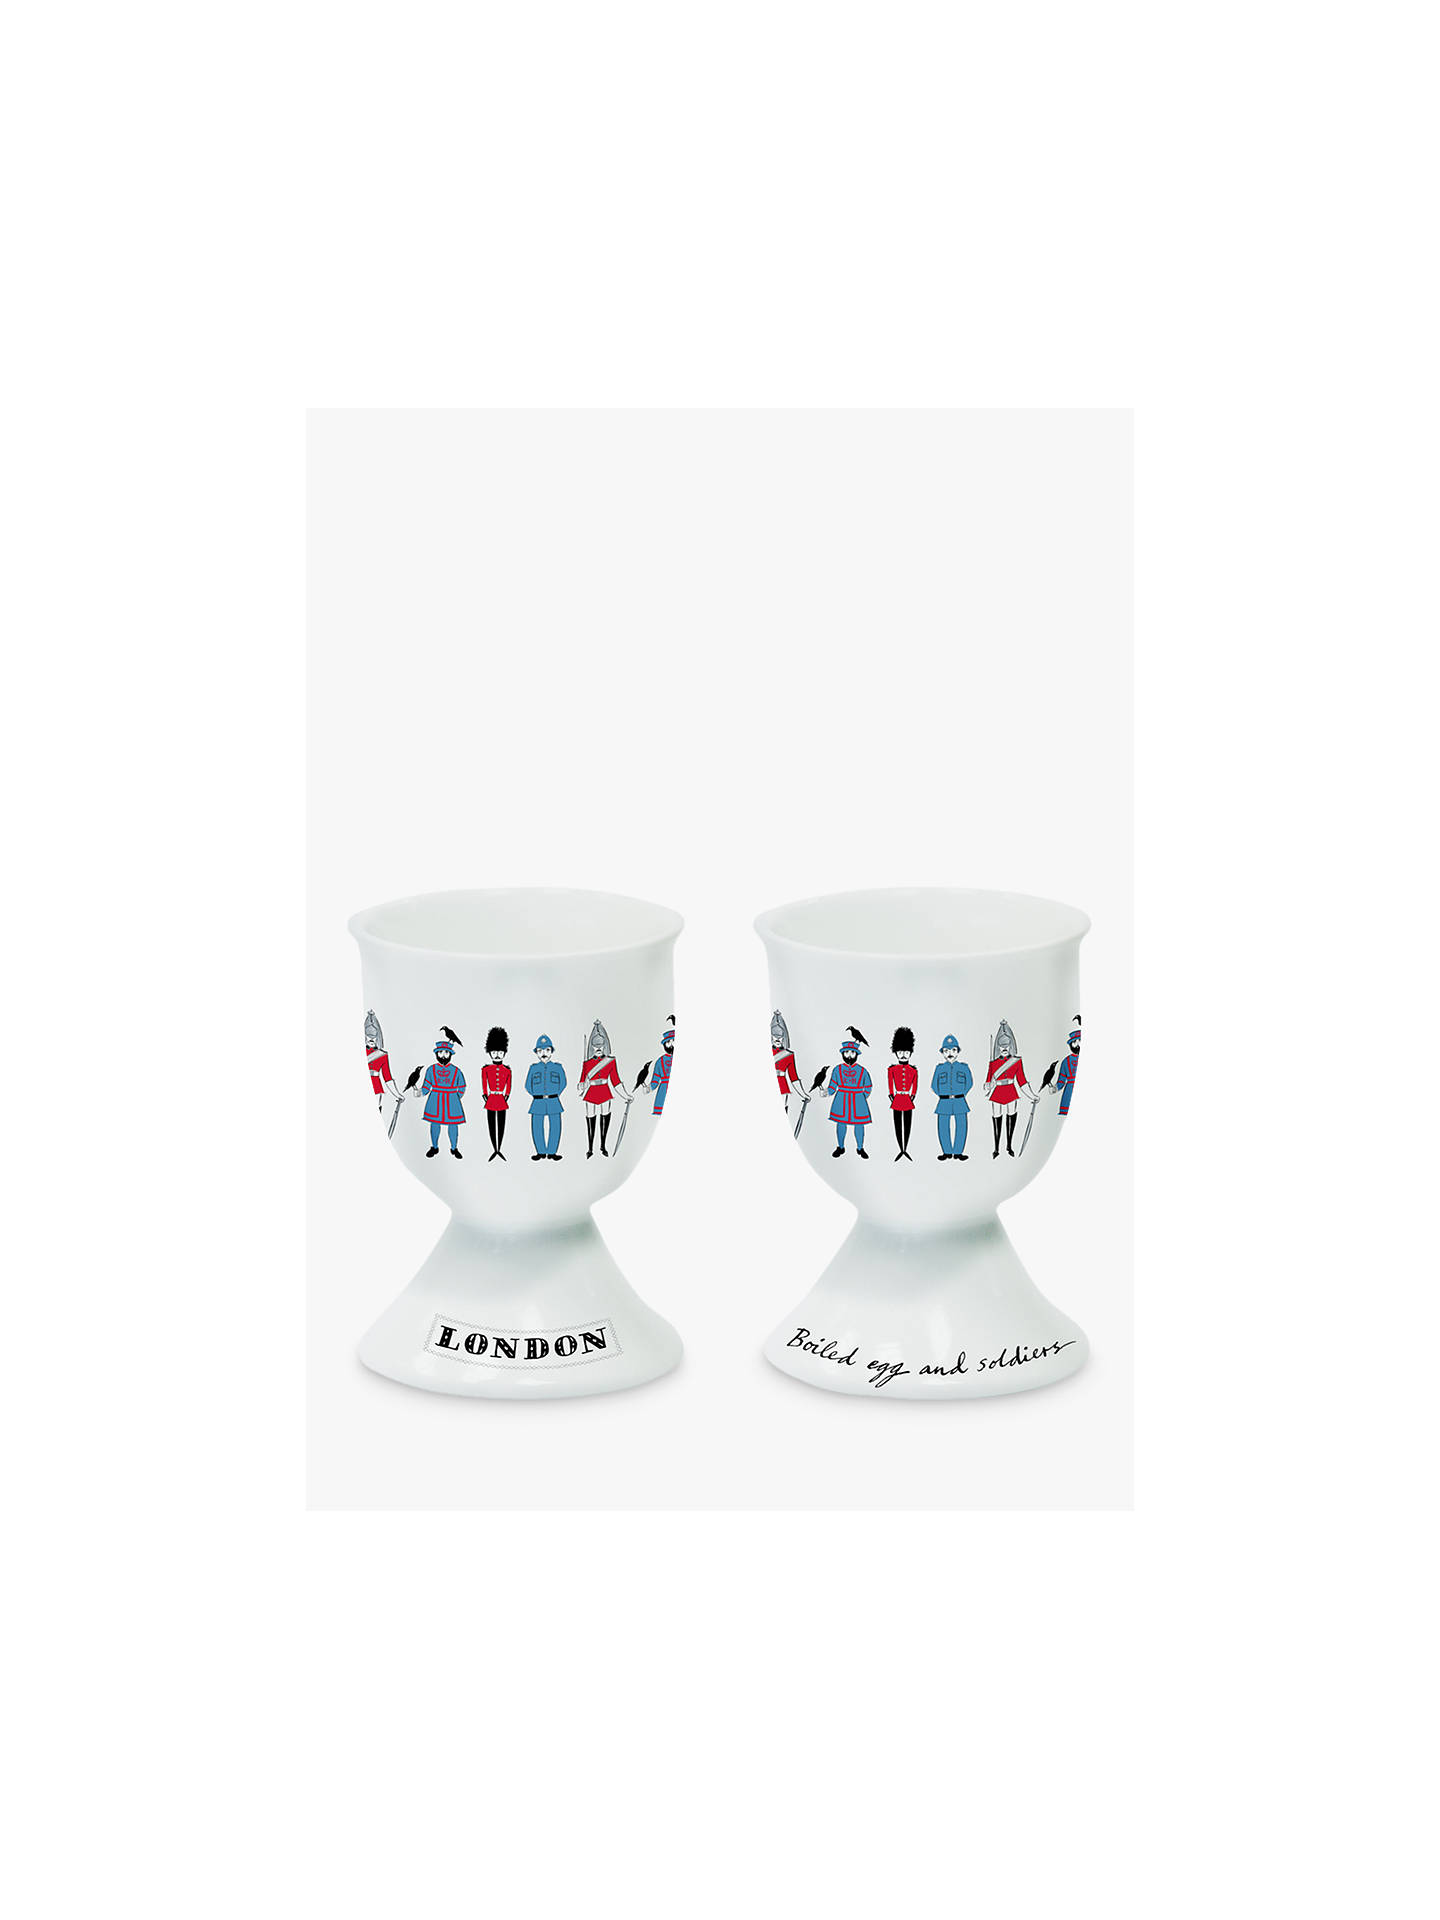 BuyAlice Tait Soldier Egg Cup Online at johnlewis.com